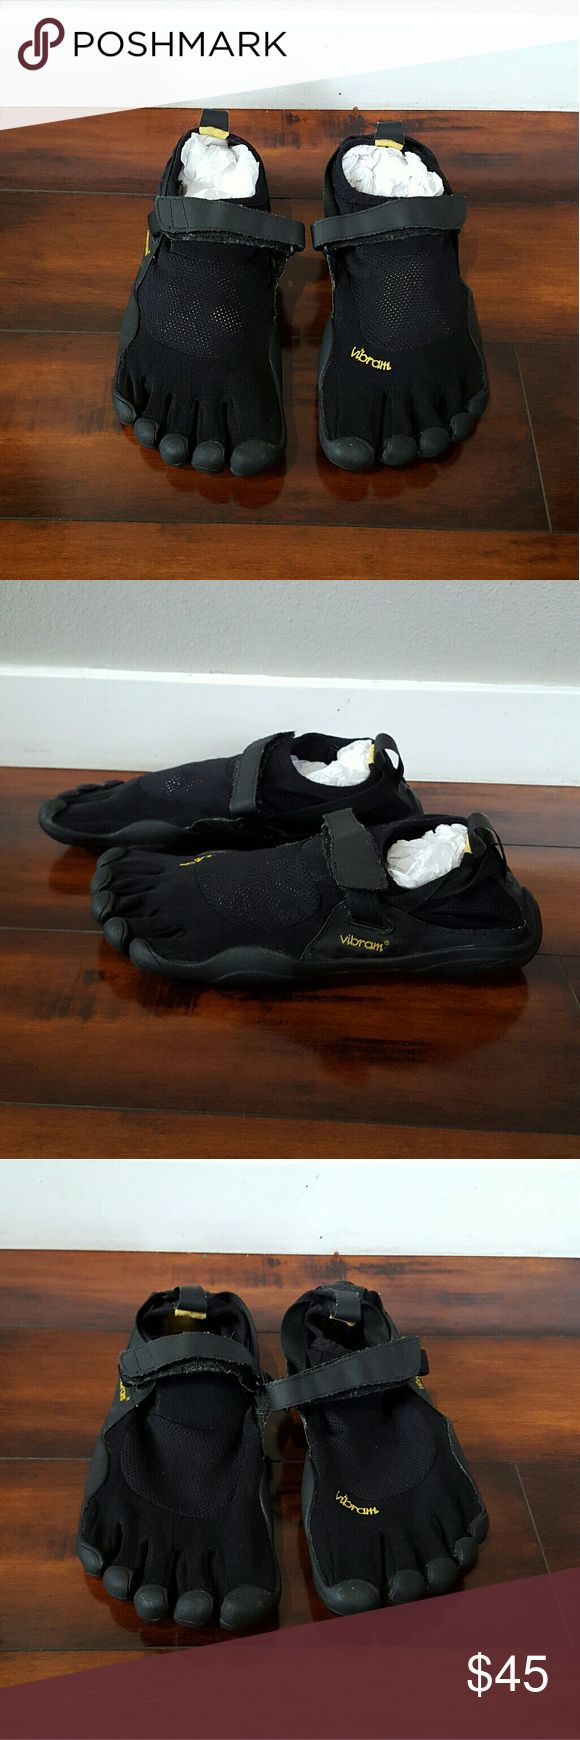 Men's black Vibram five finger shoes, size 10 Men's black Vibram five finger shoes, size 42, sz 10. Vibram Shoes